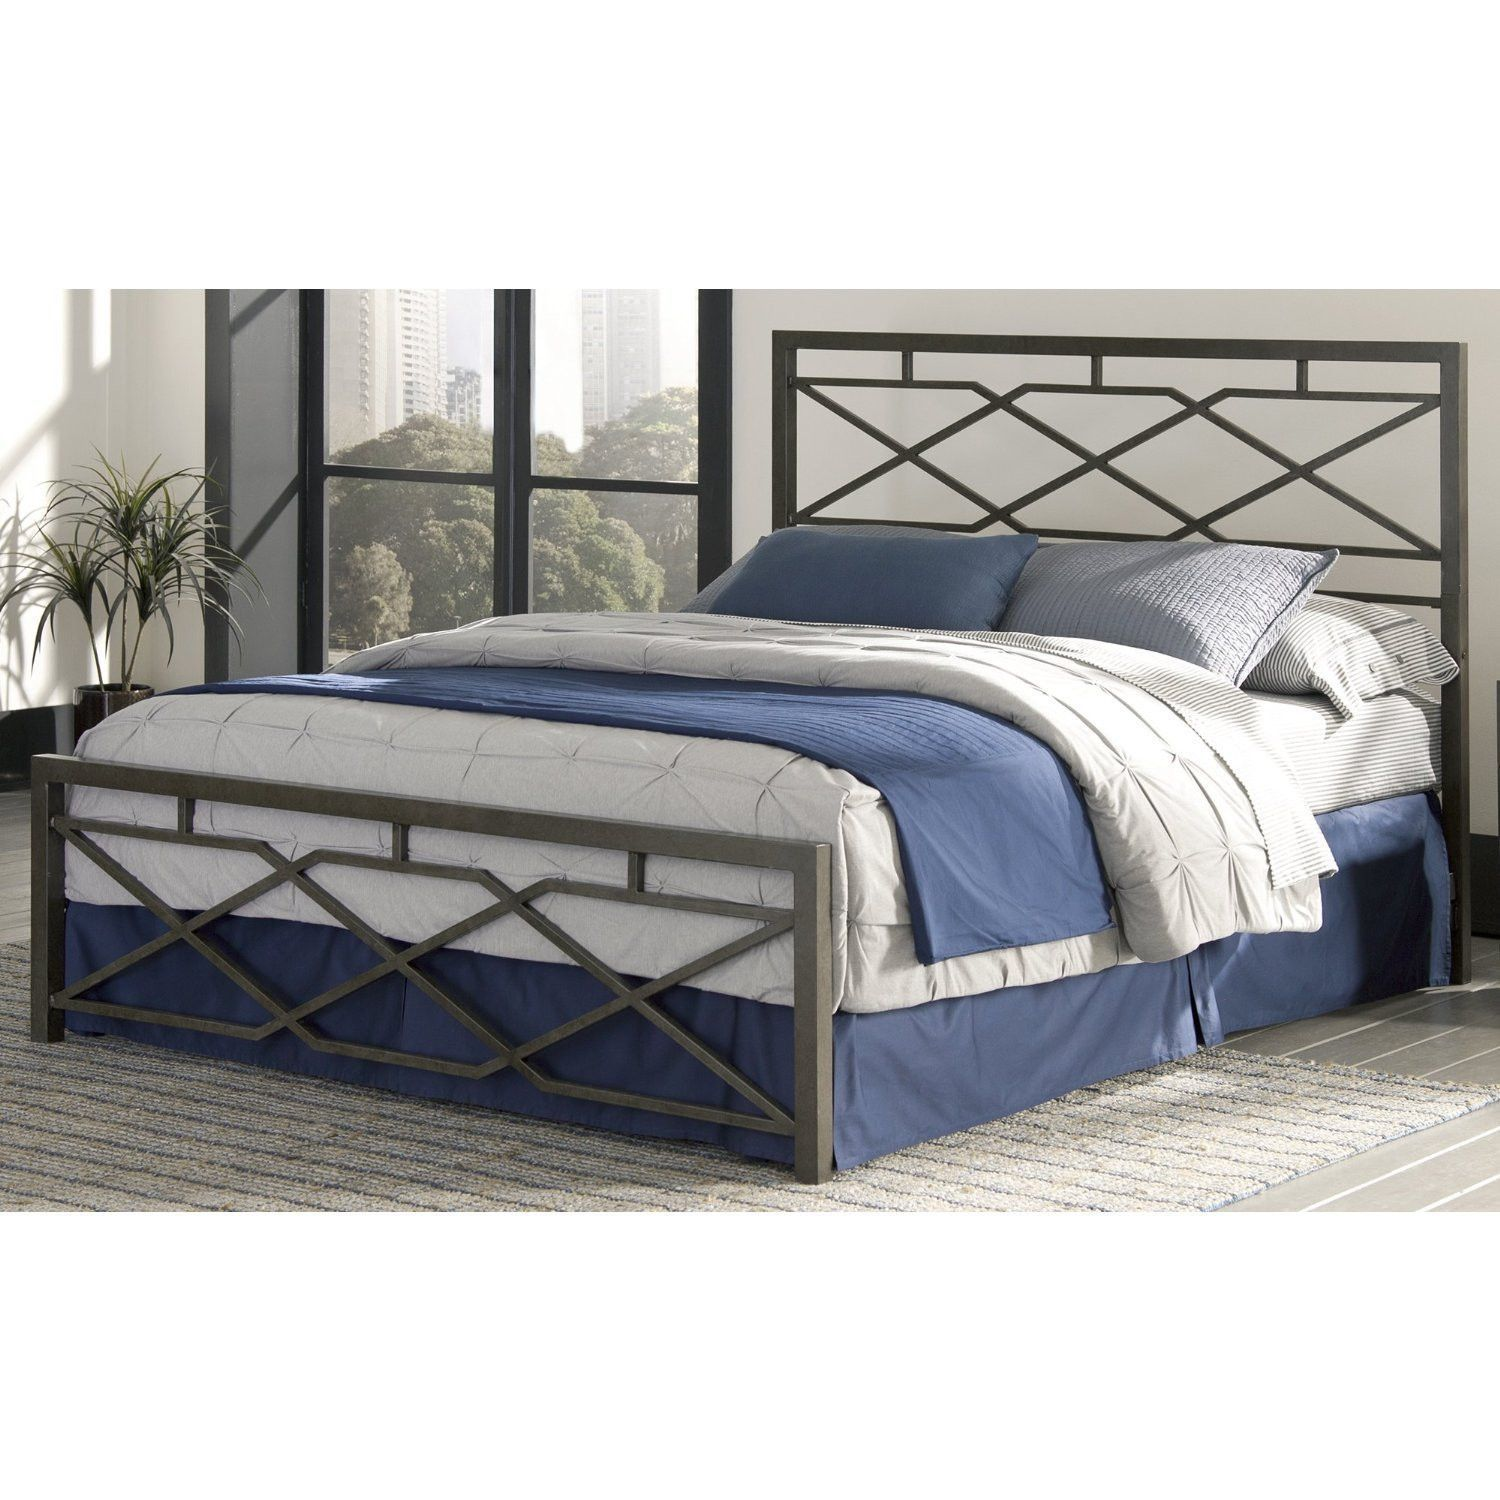 Carbon Steel Folding Bed Frame w/Headboard & Footboard